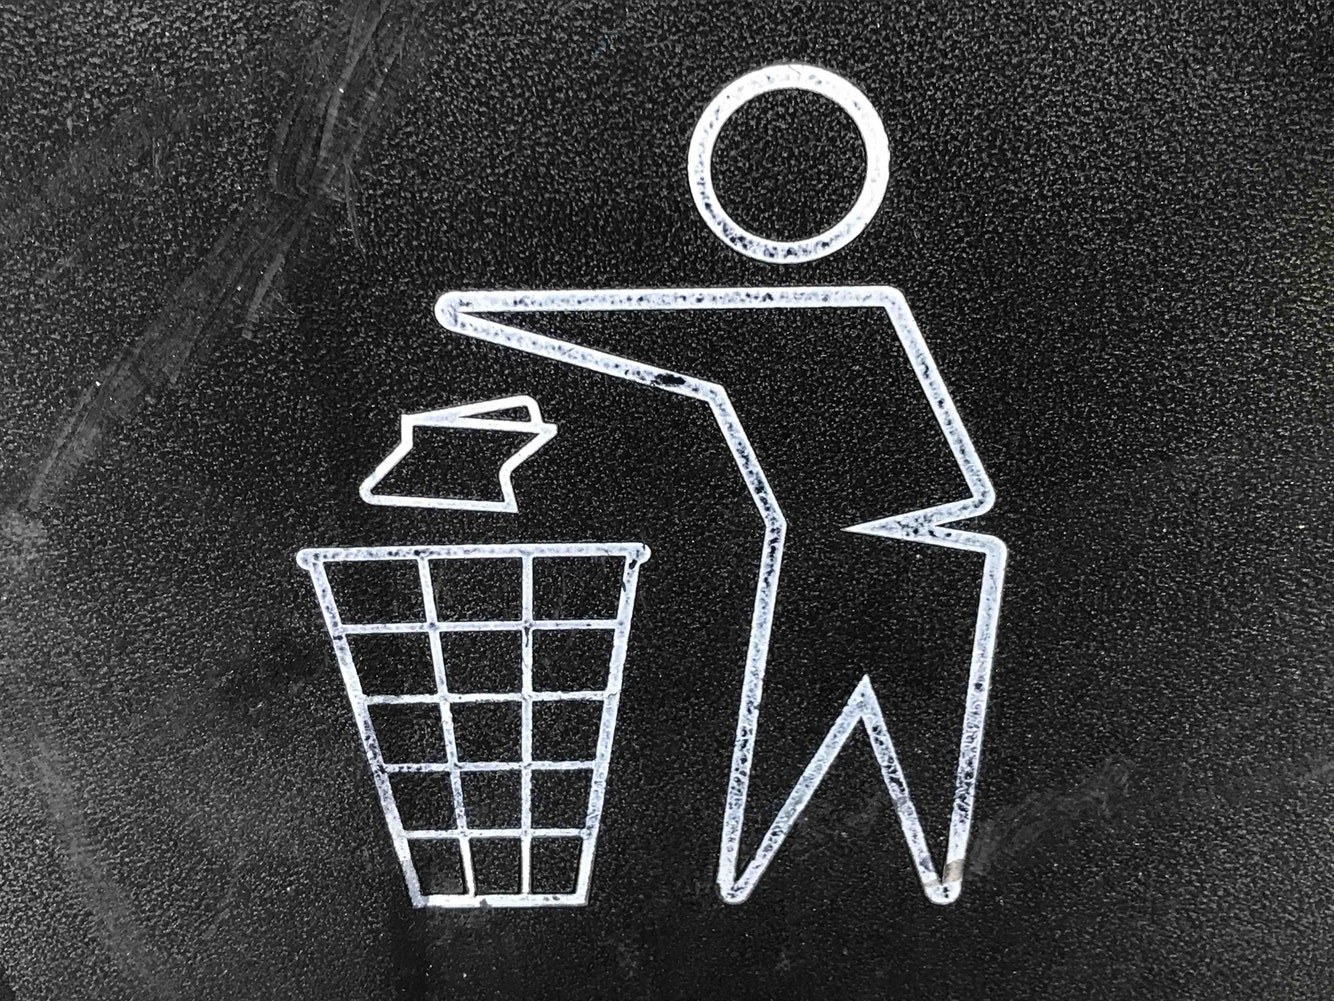 How recycling helps the environment